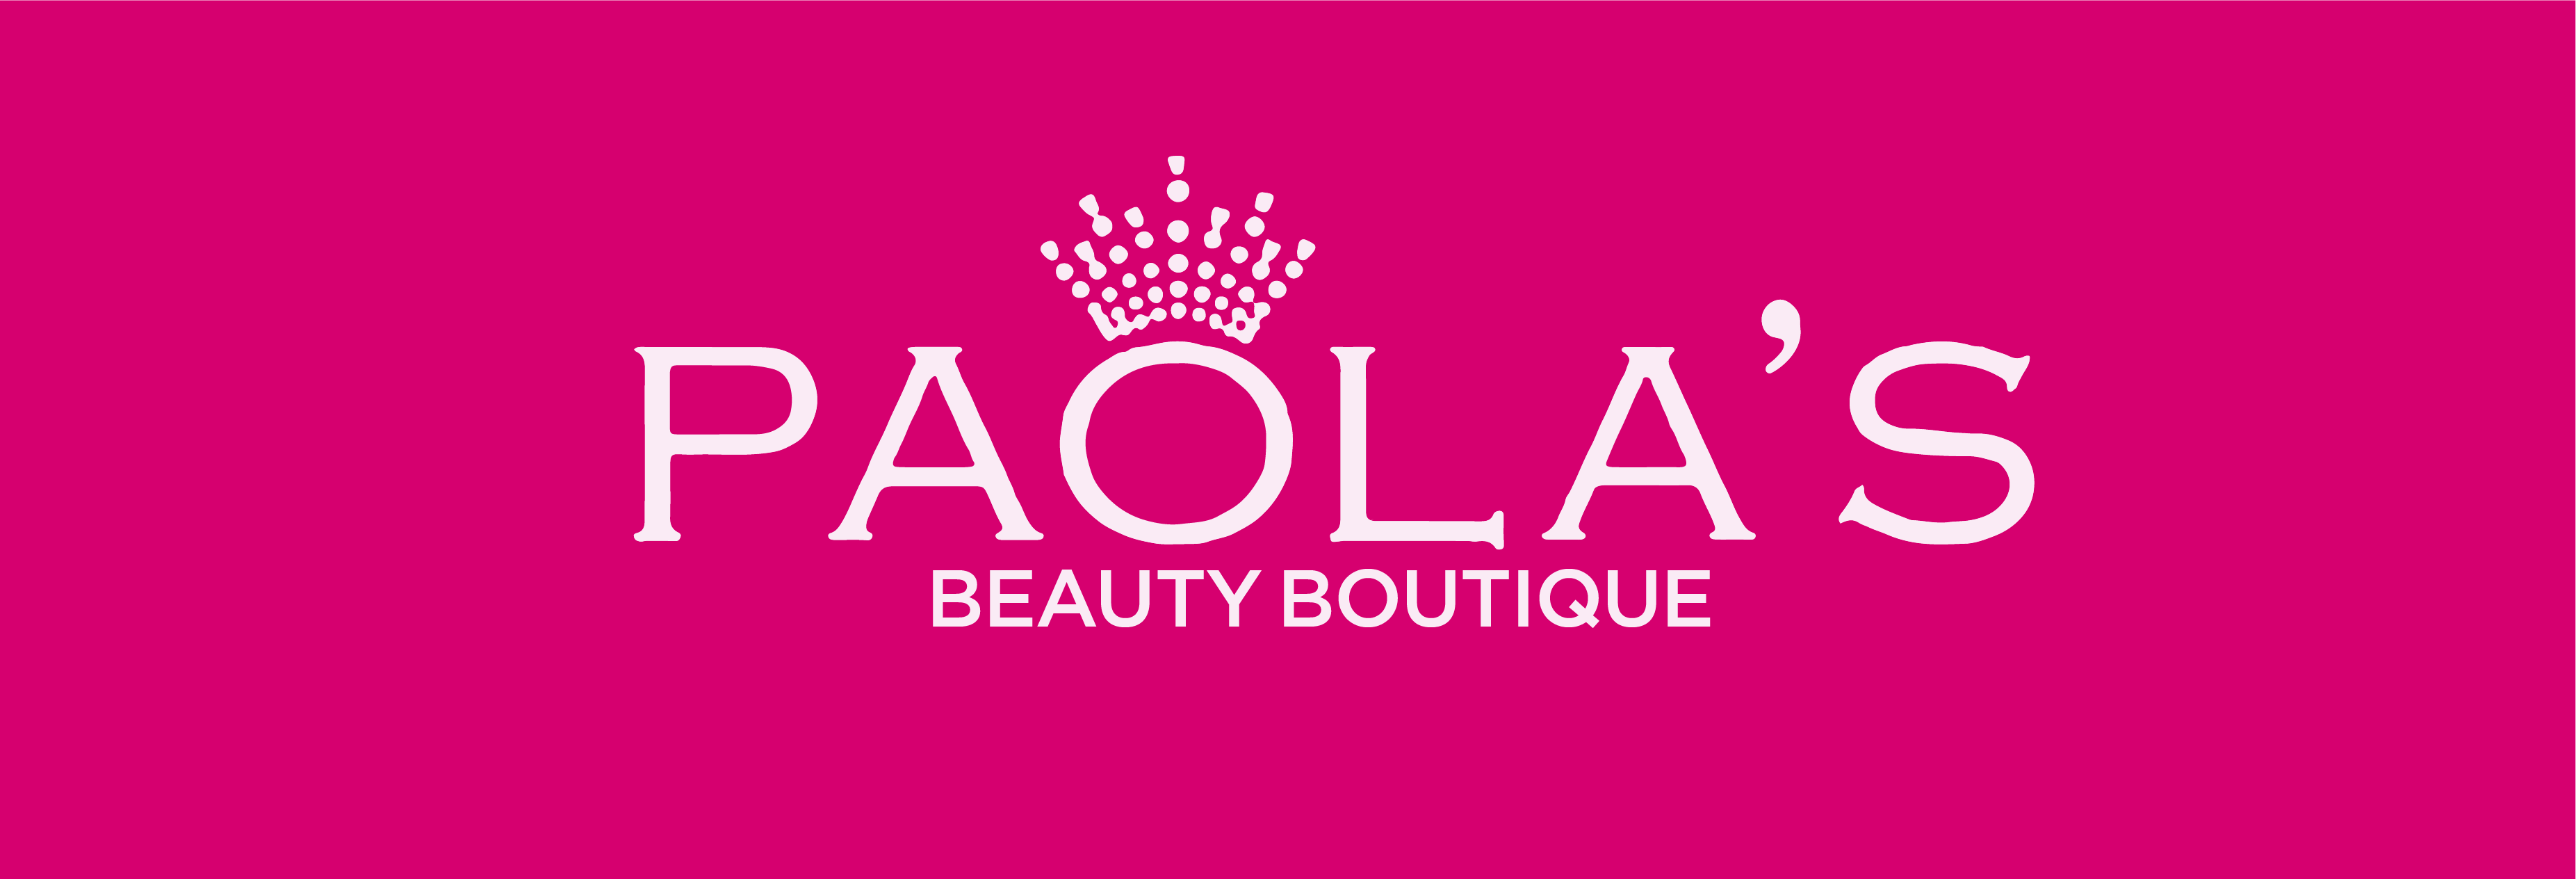 Paola's beauty boutique